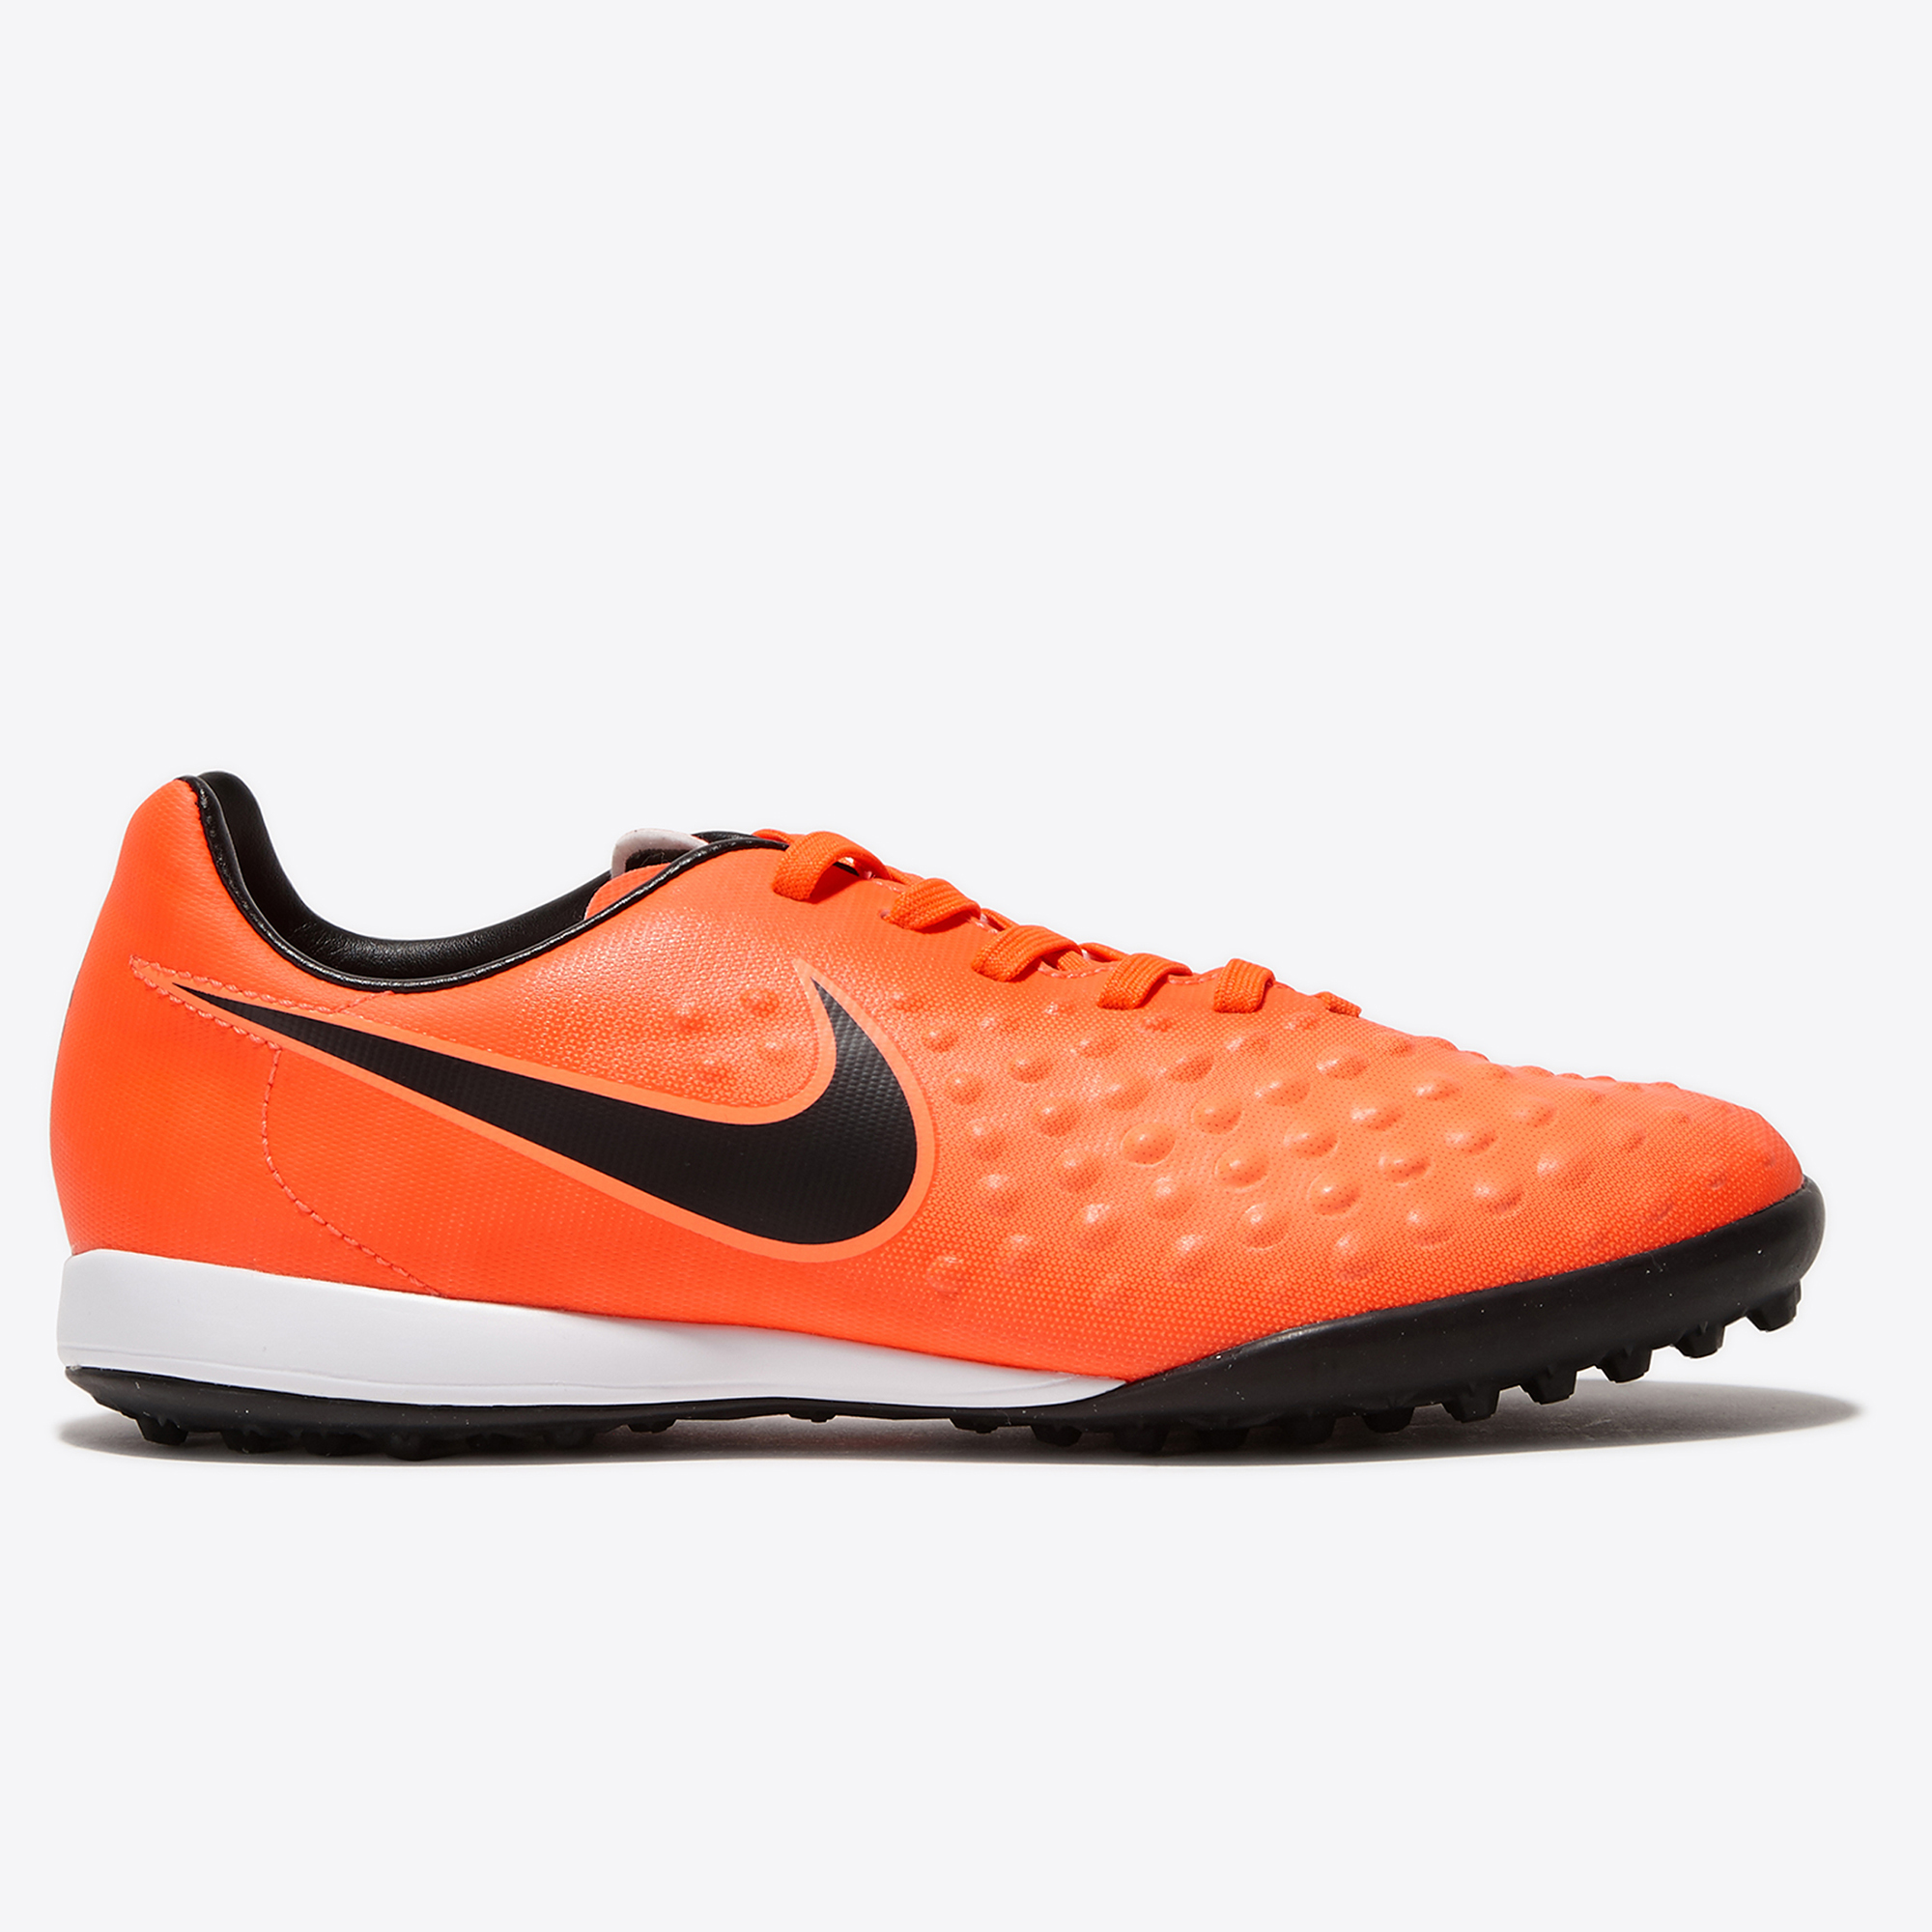 Nike Magista Opus II Astroturf Trainers - Total Crimson/Black/Bright M